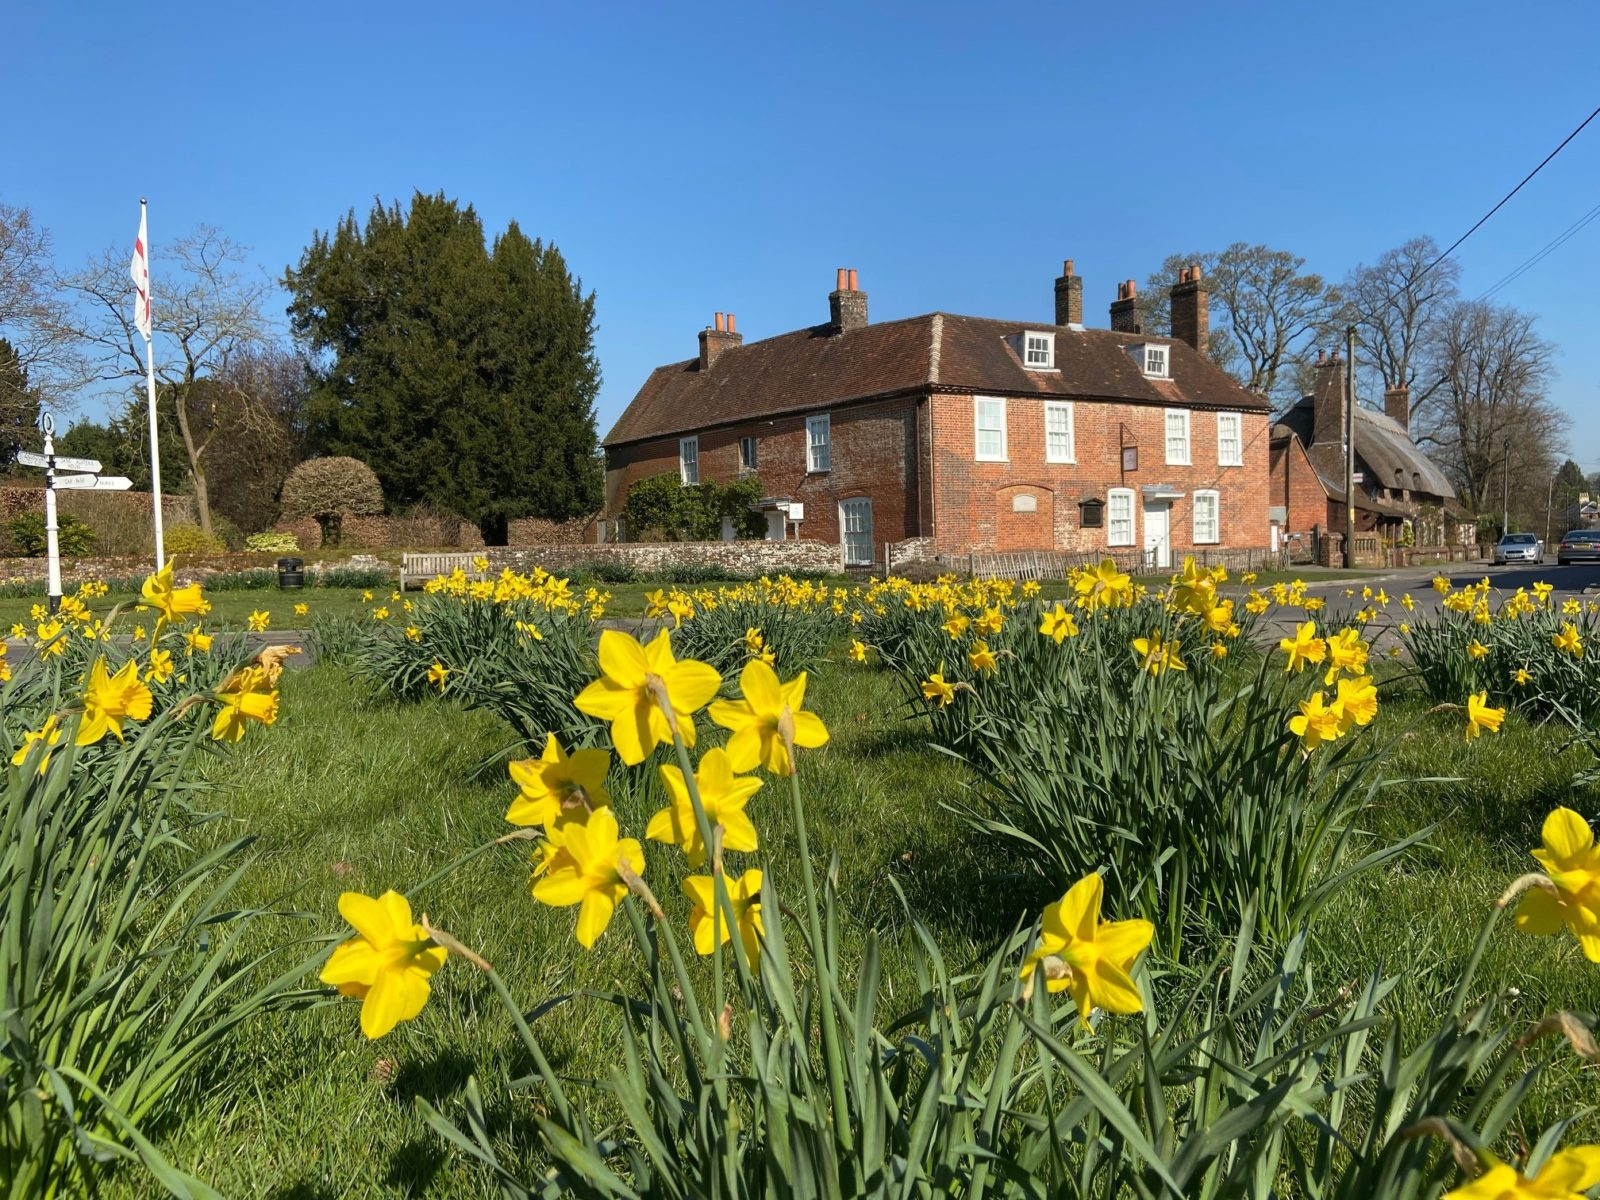 March has brought the daffodils and an architect to Jane Austen's House